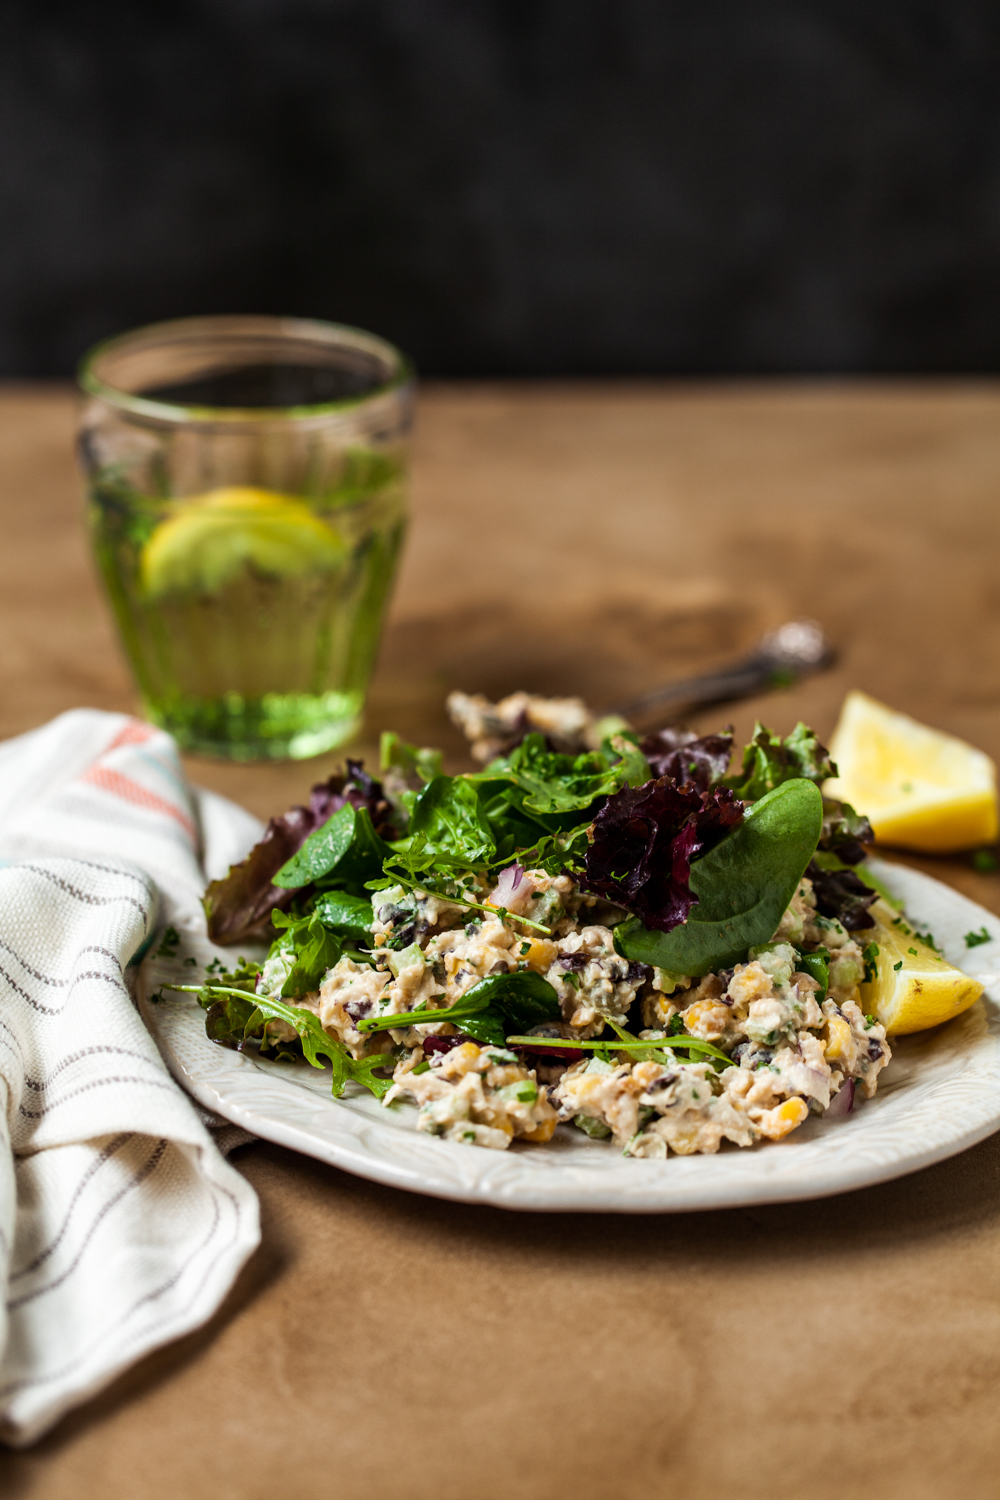 Smashed chickpea salad with green leaves on a white plate with a glass and napkin